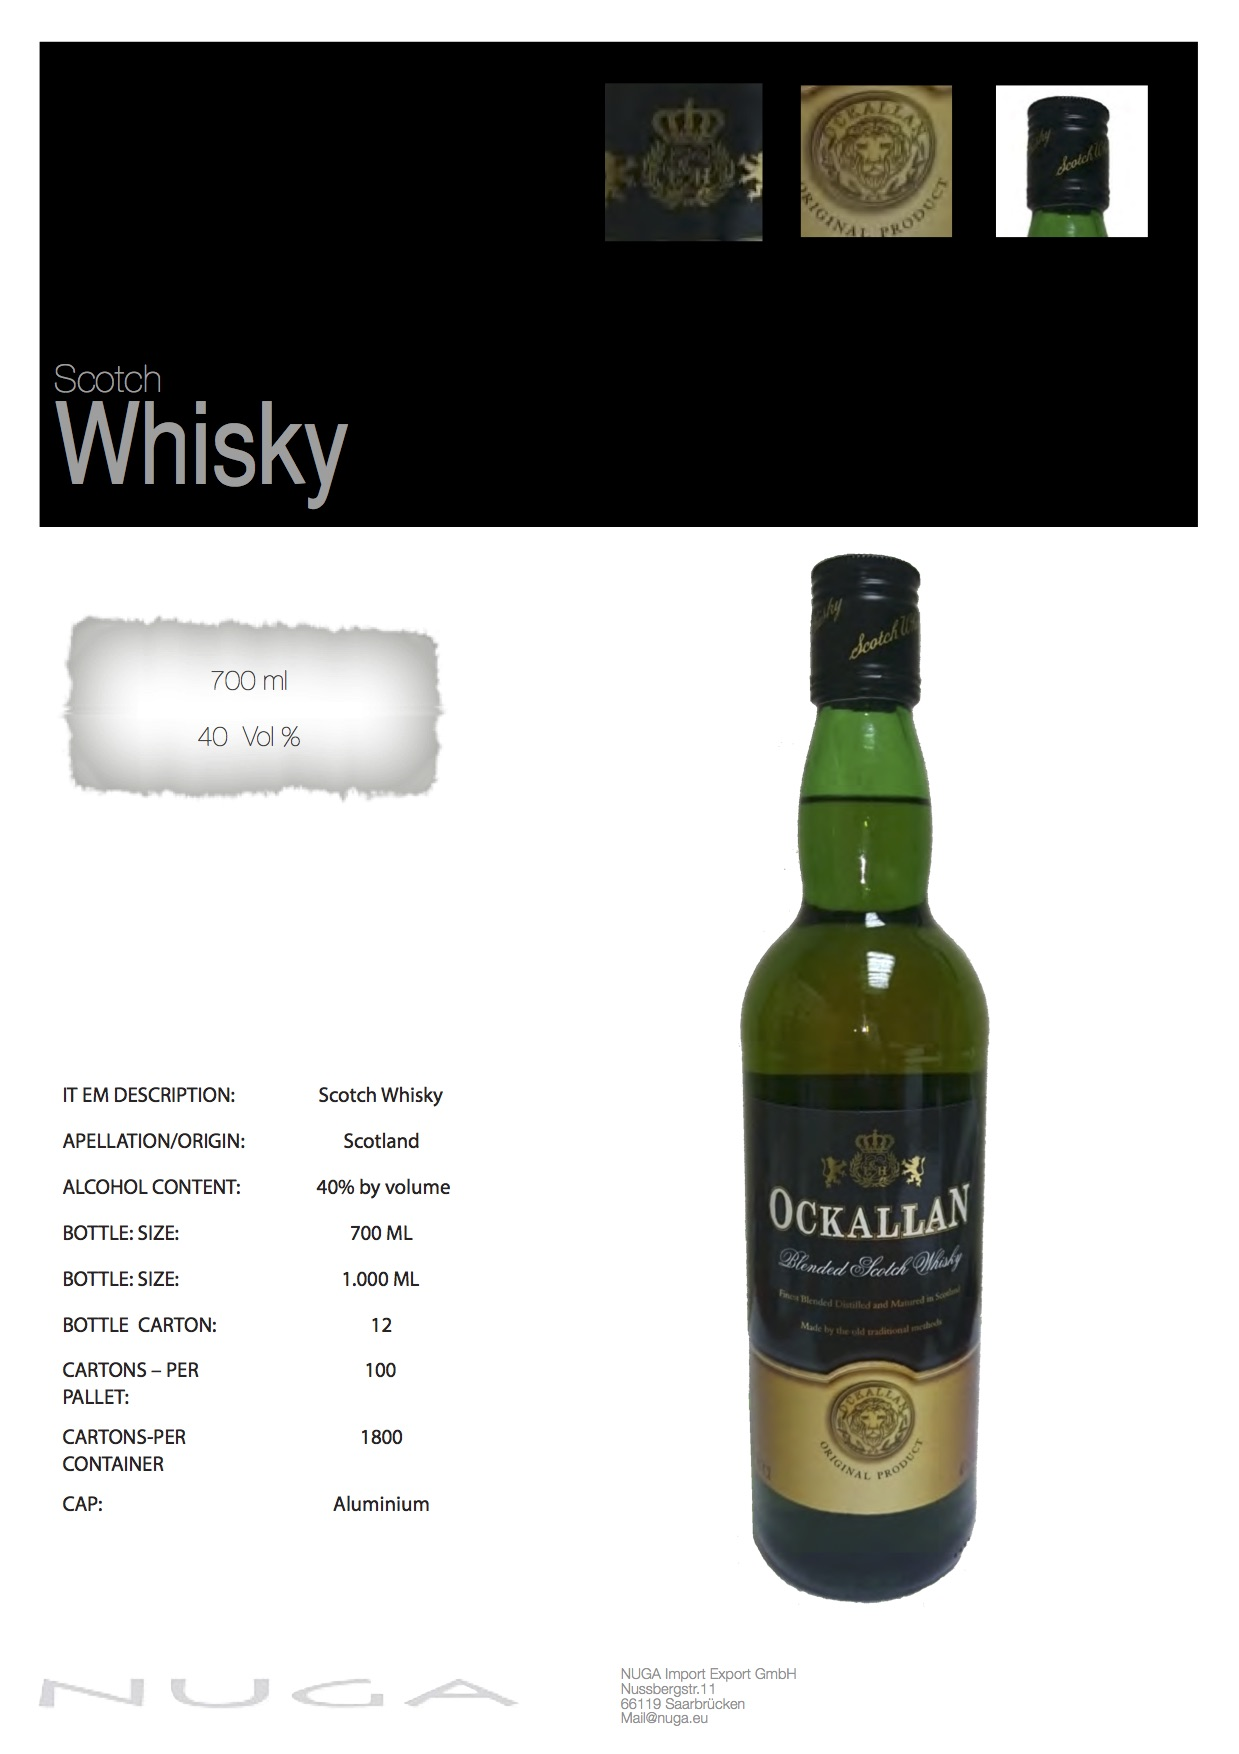 Scotch Whisky or EU Whisky